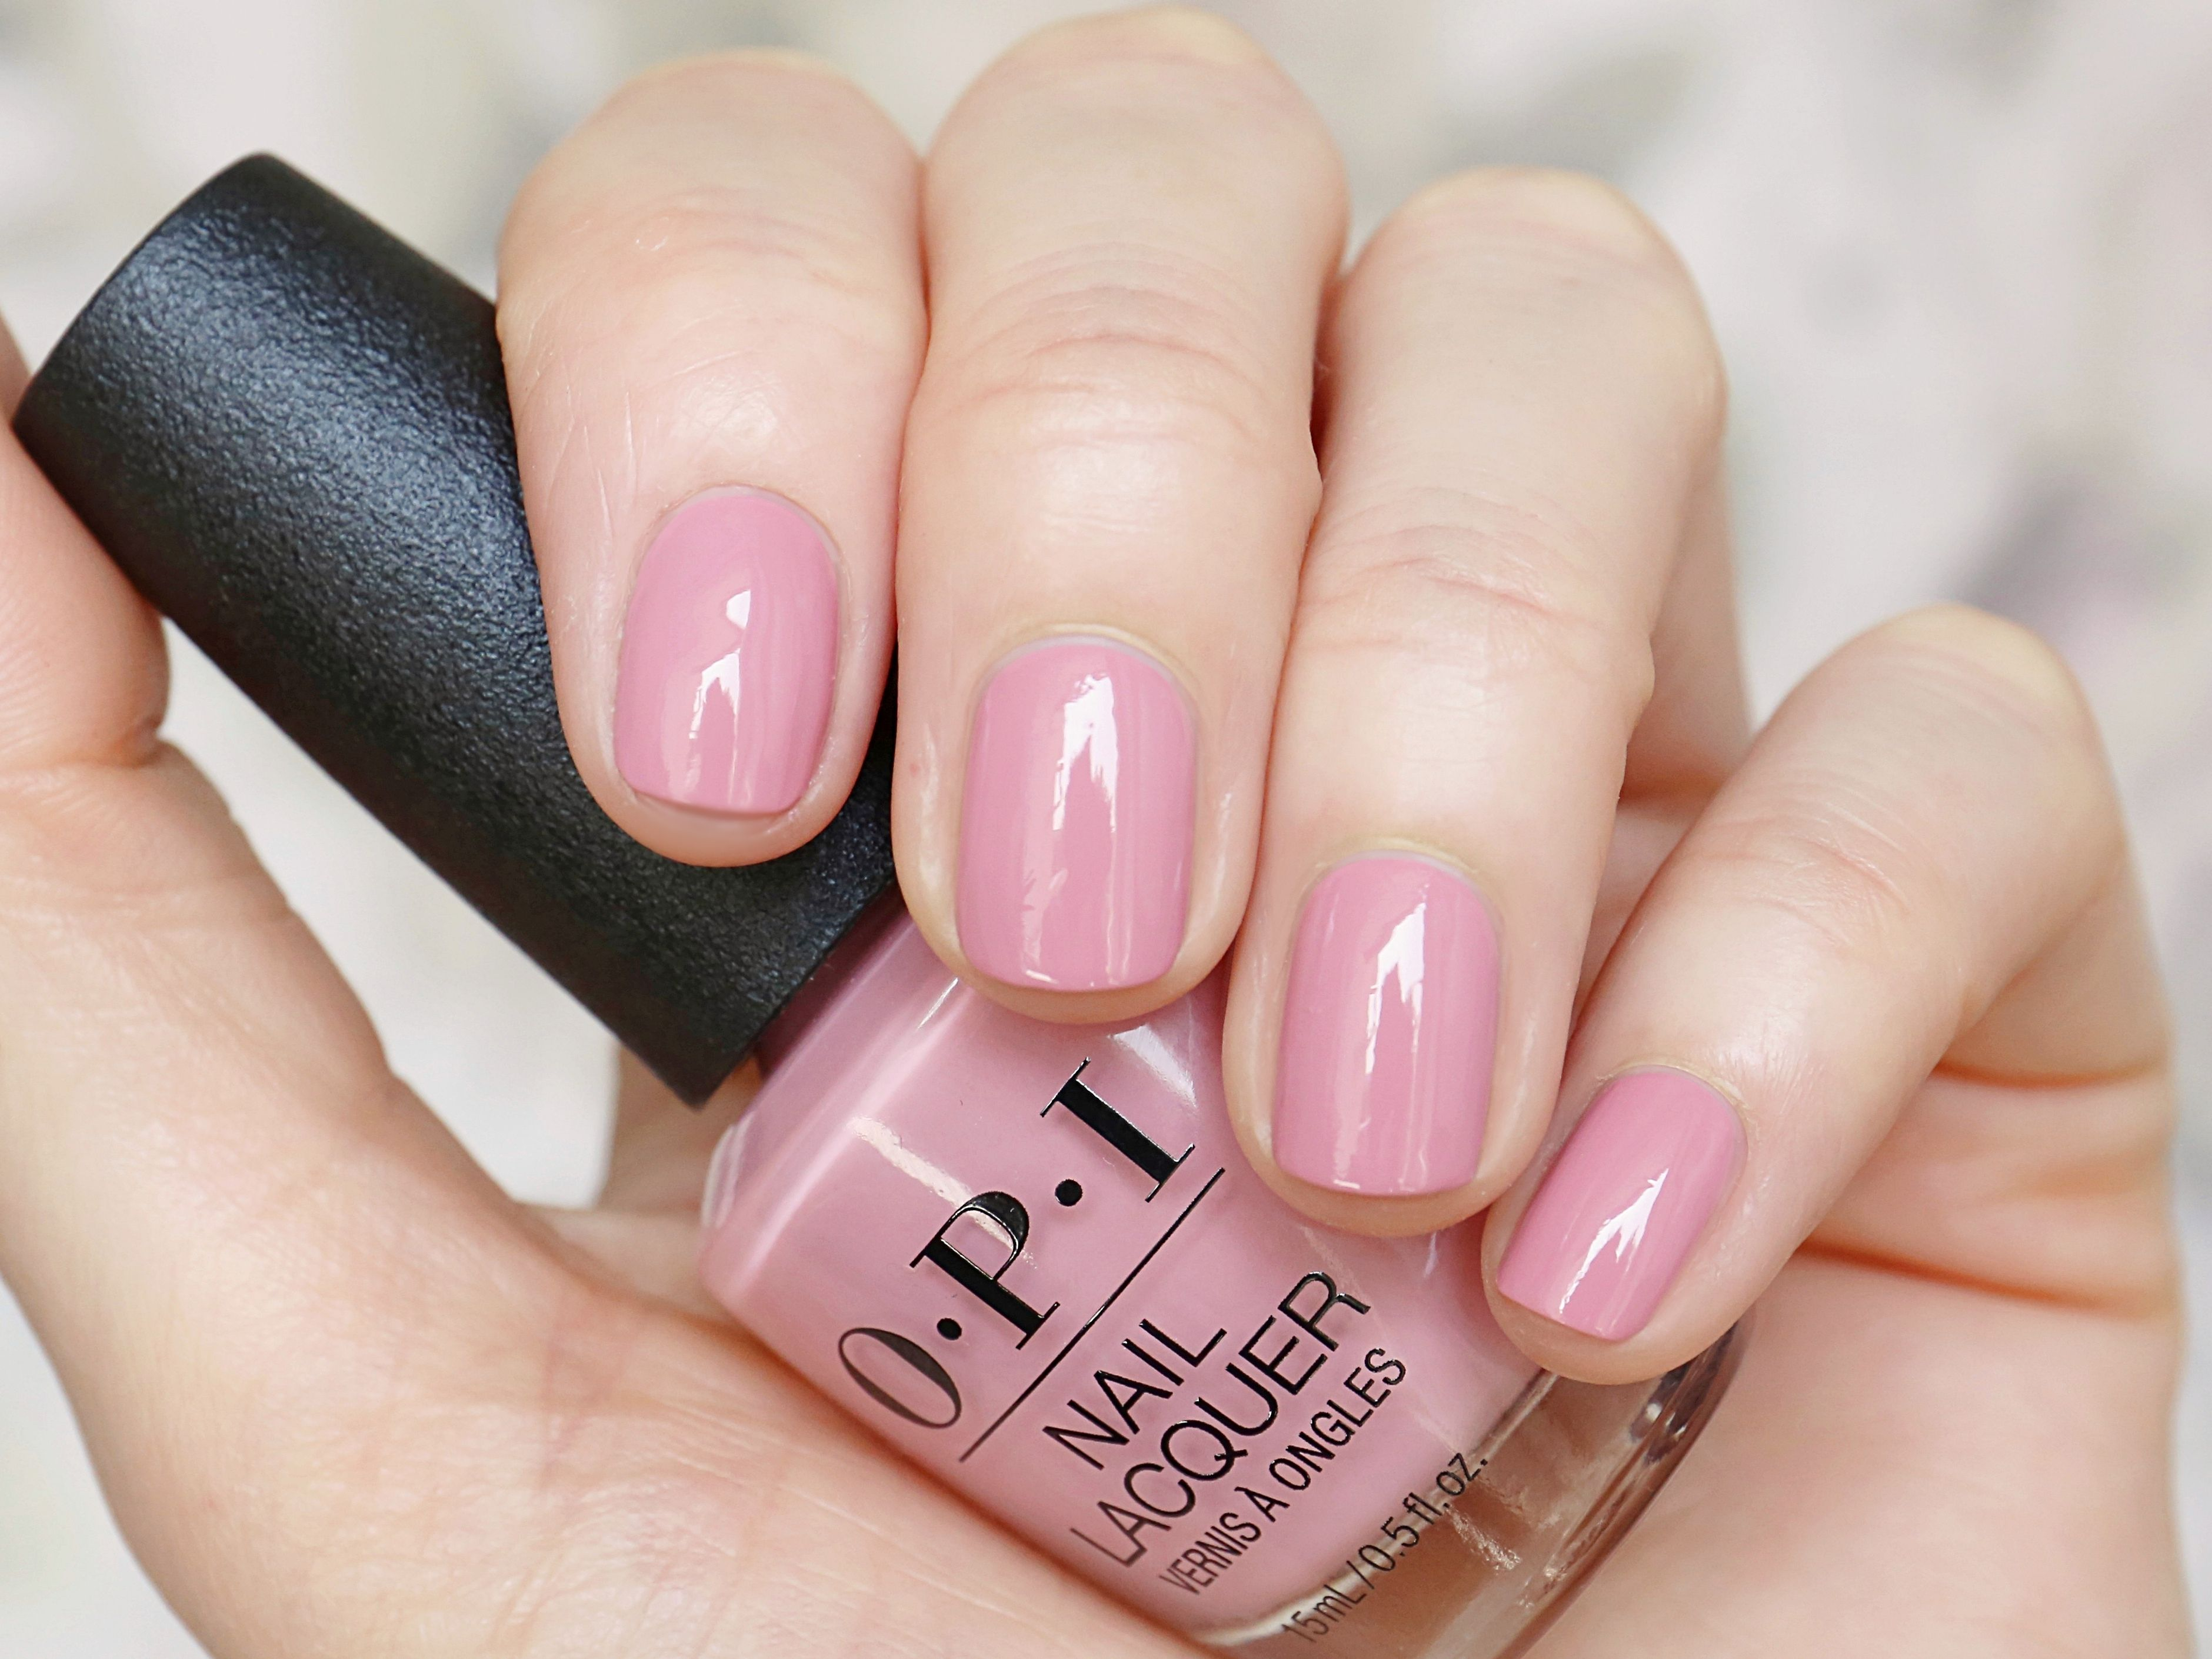 Opi You Crossed The Nazca Line Opi Nail Lacquer Nail Colors Opi Nails